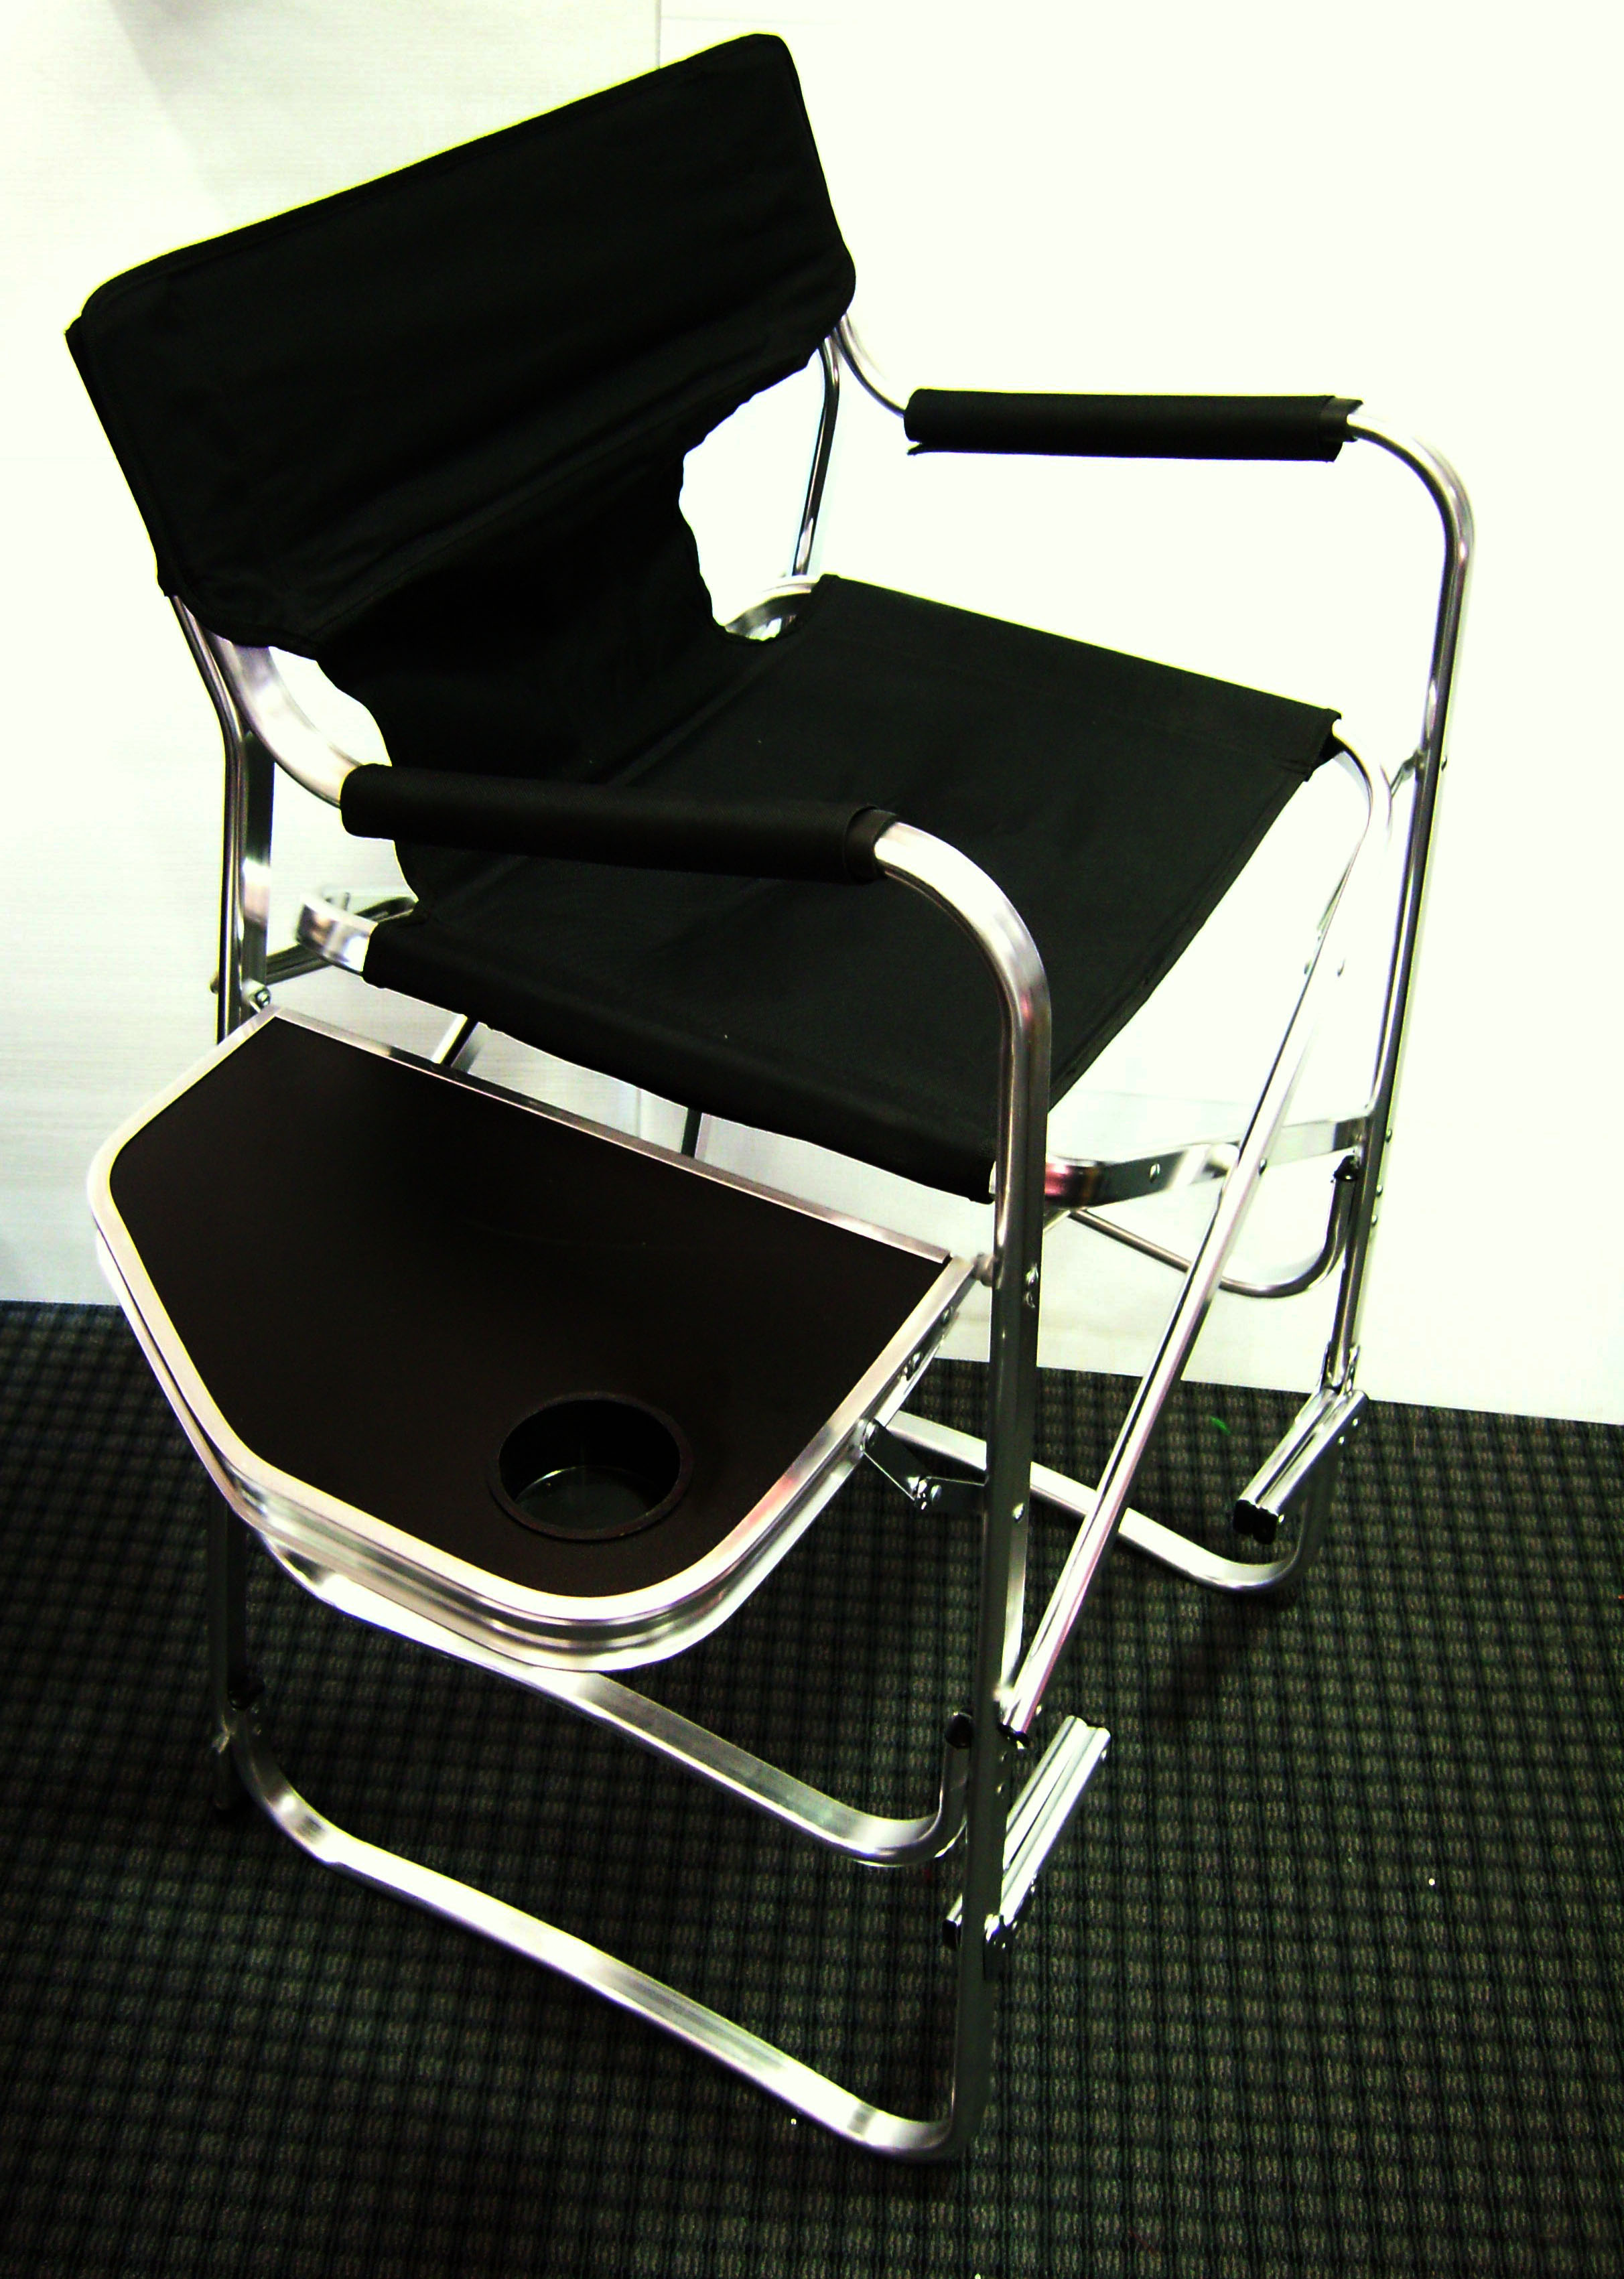 Make Up Studio Chairs Awesome Makeup Chair Rtty1 Rtty1